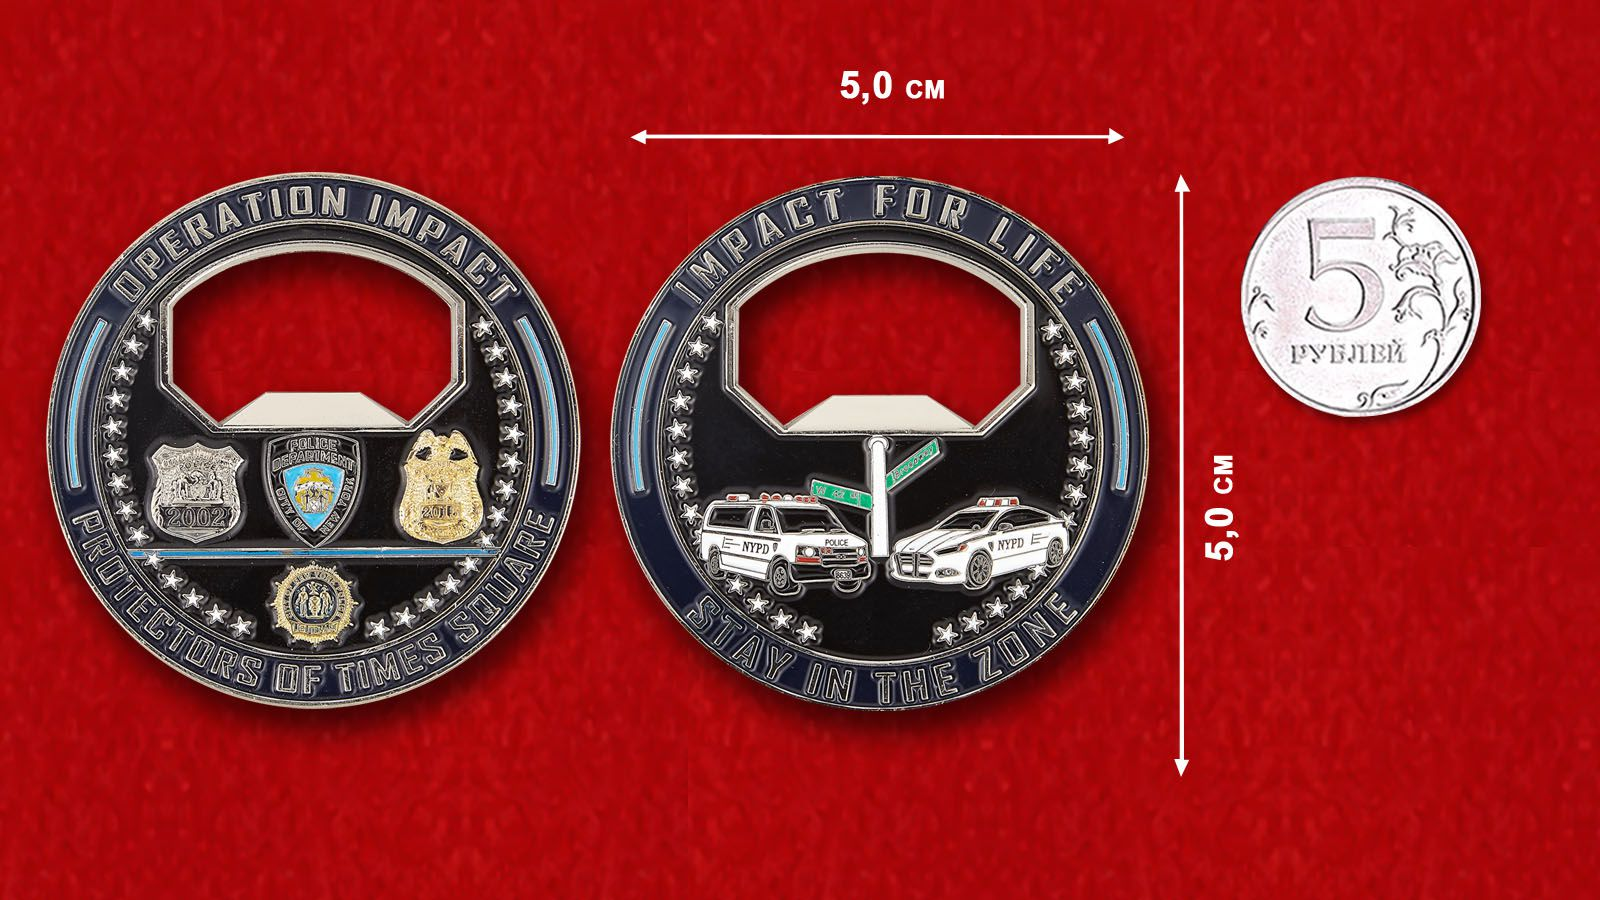 Police Department of New York City Challenge Coin - comparative size